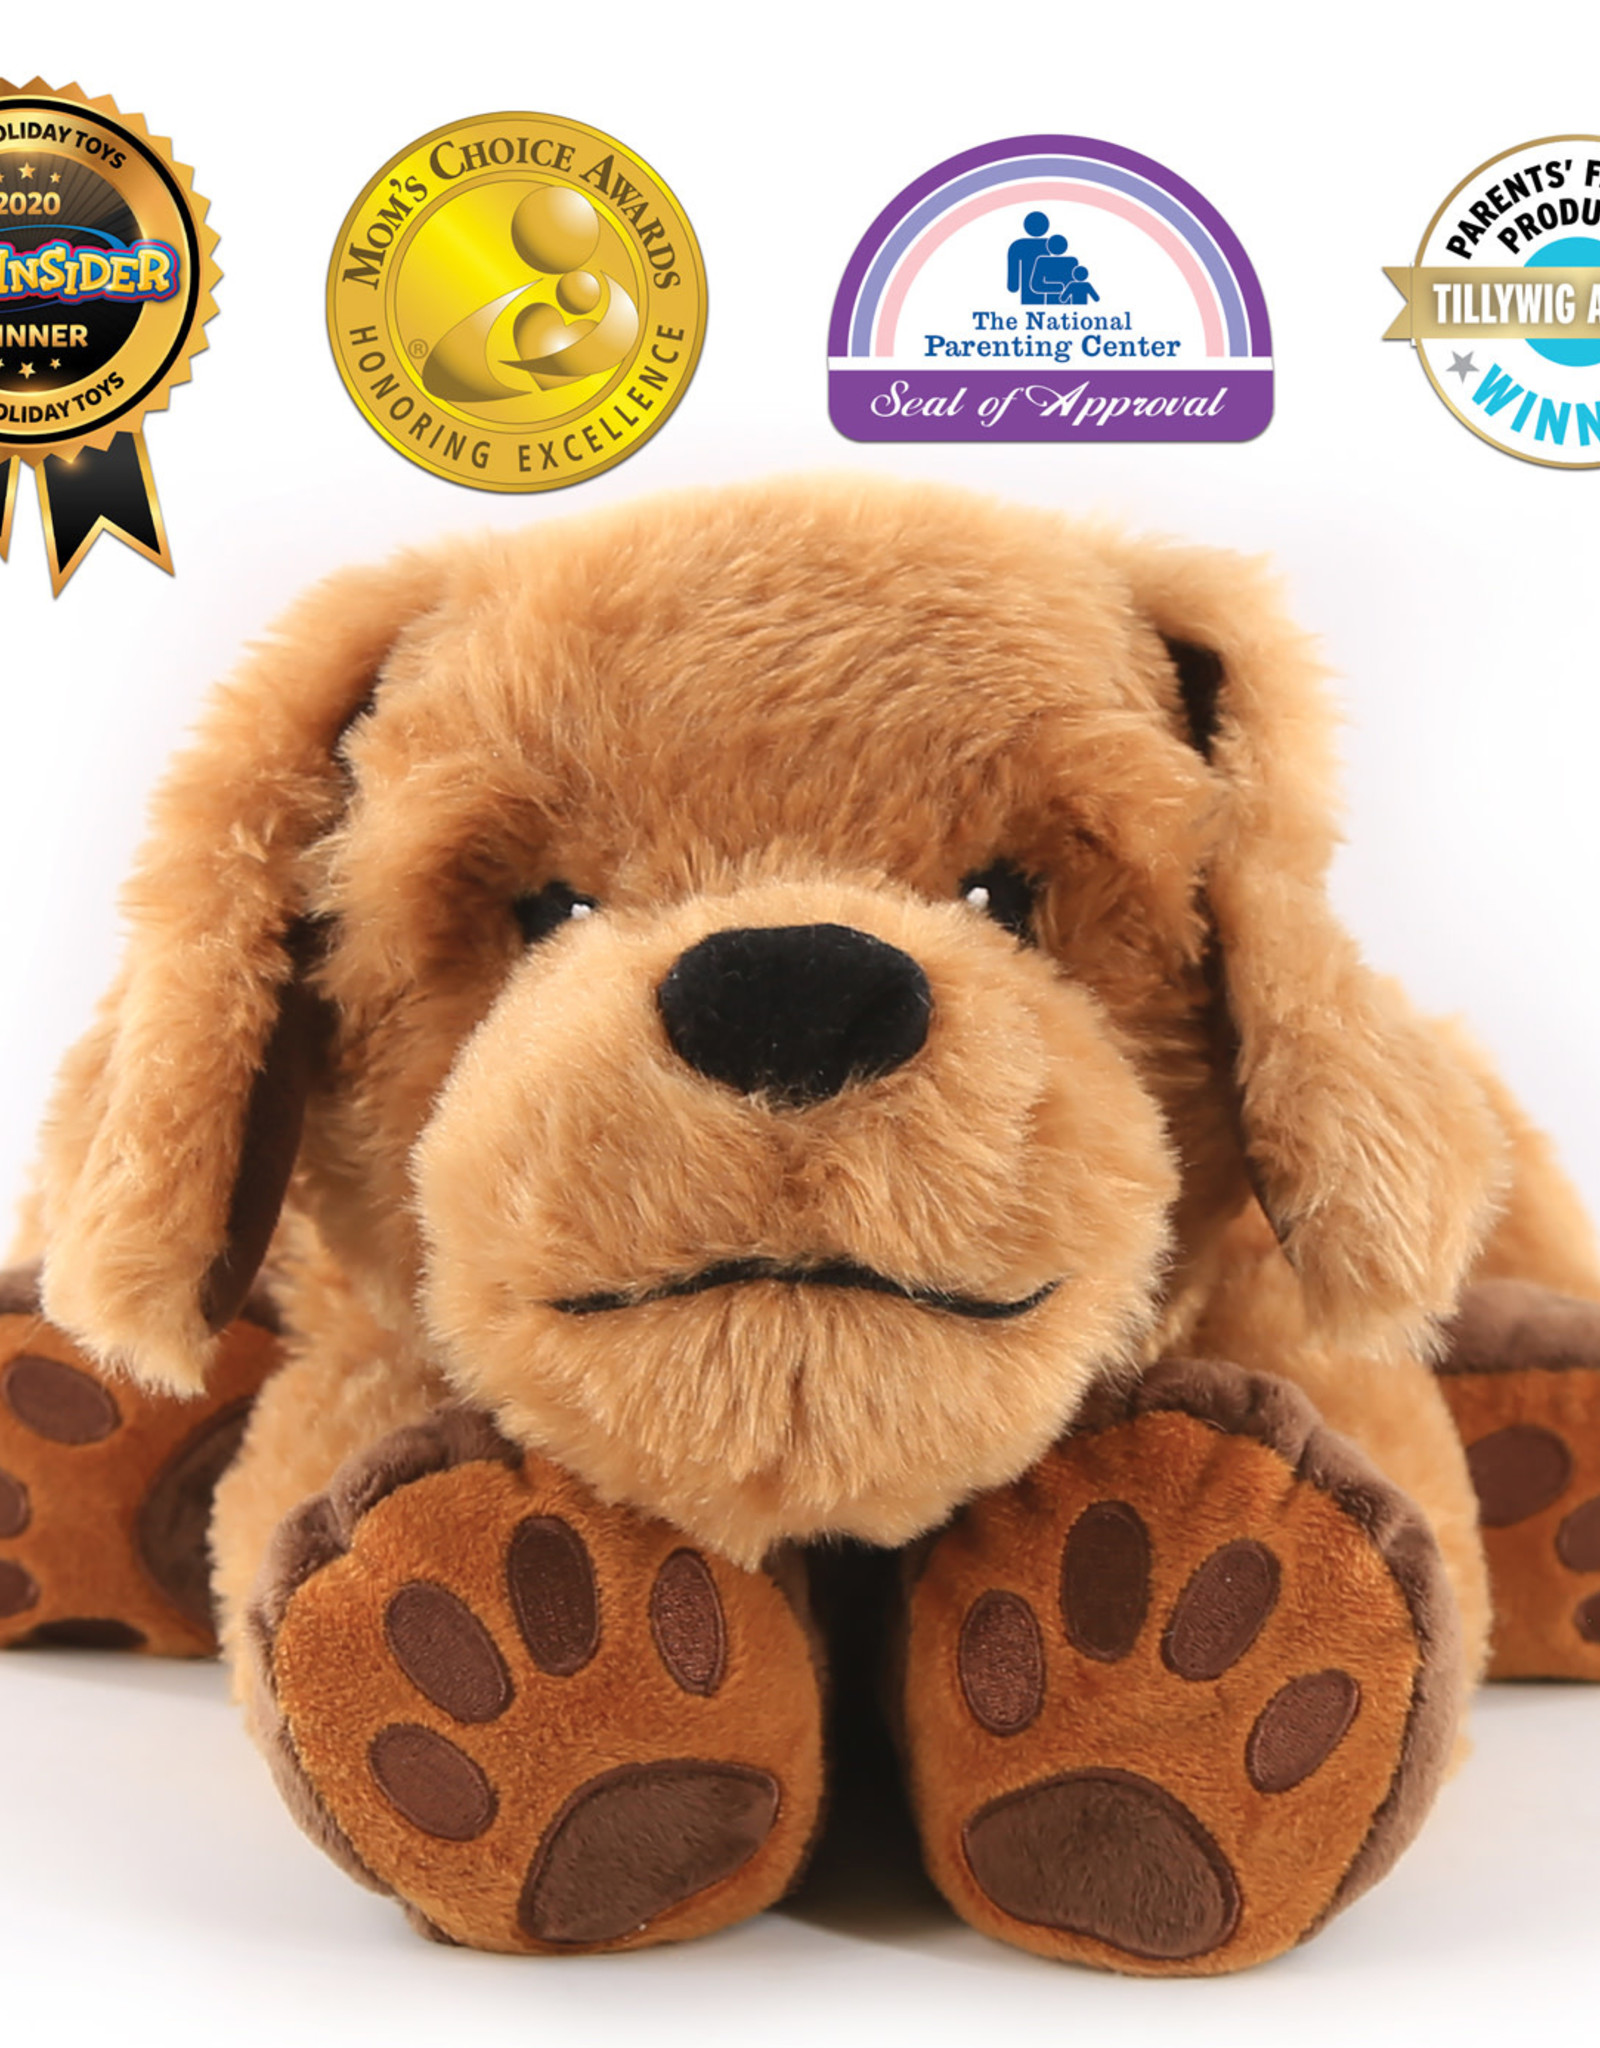 Roylco® Theo the Therapy Dog